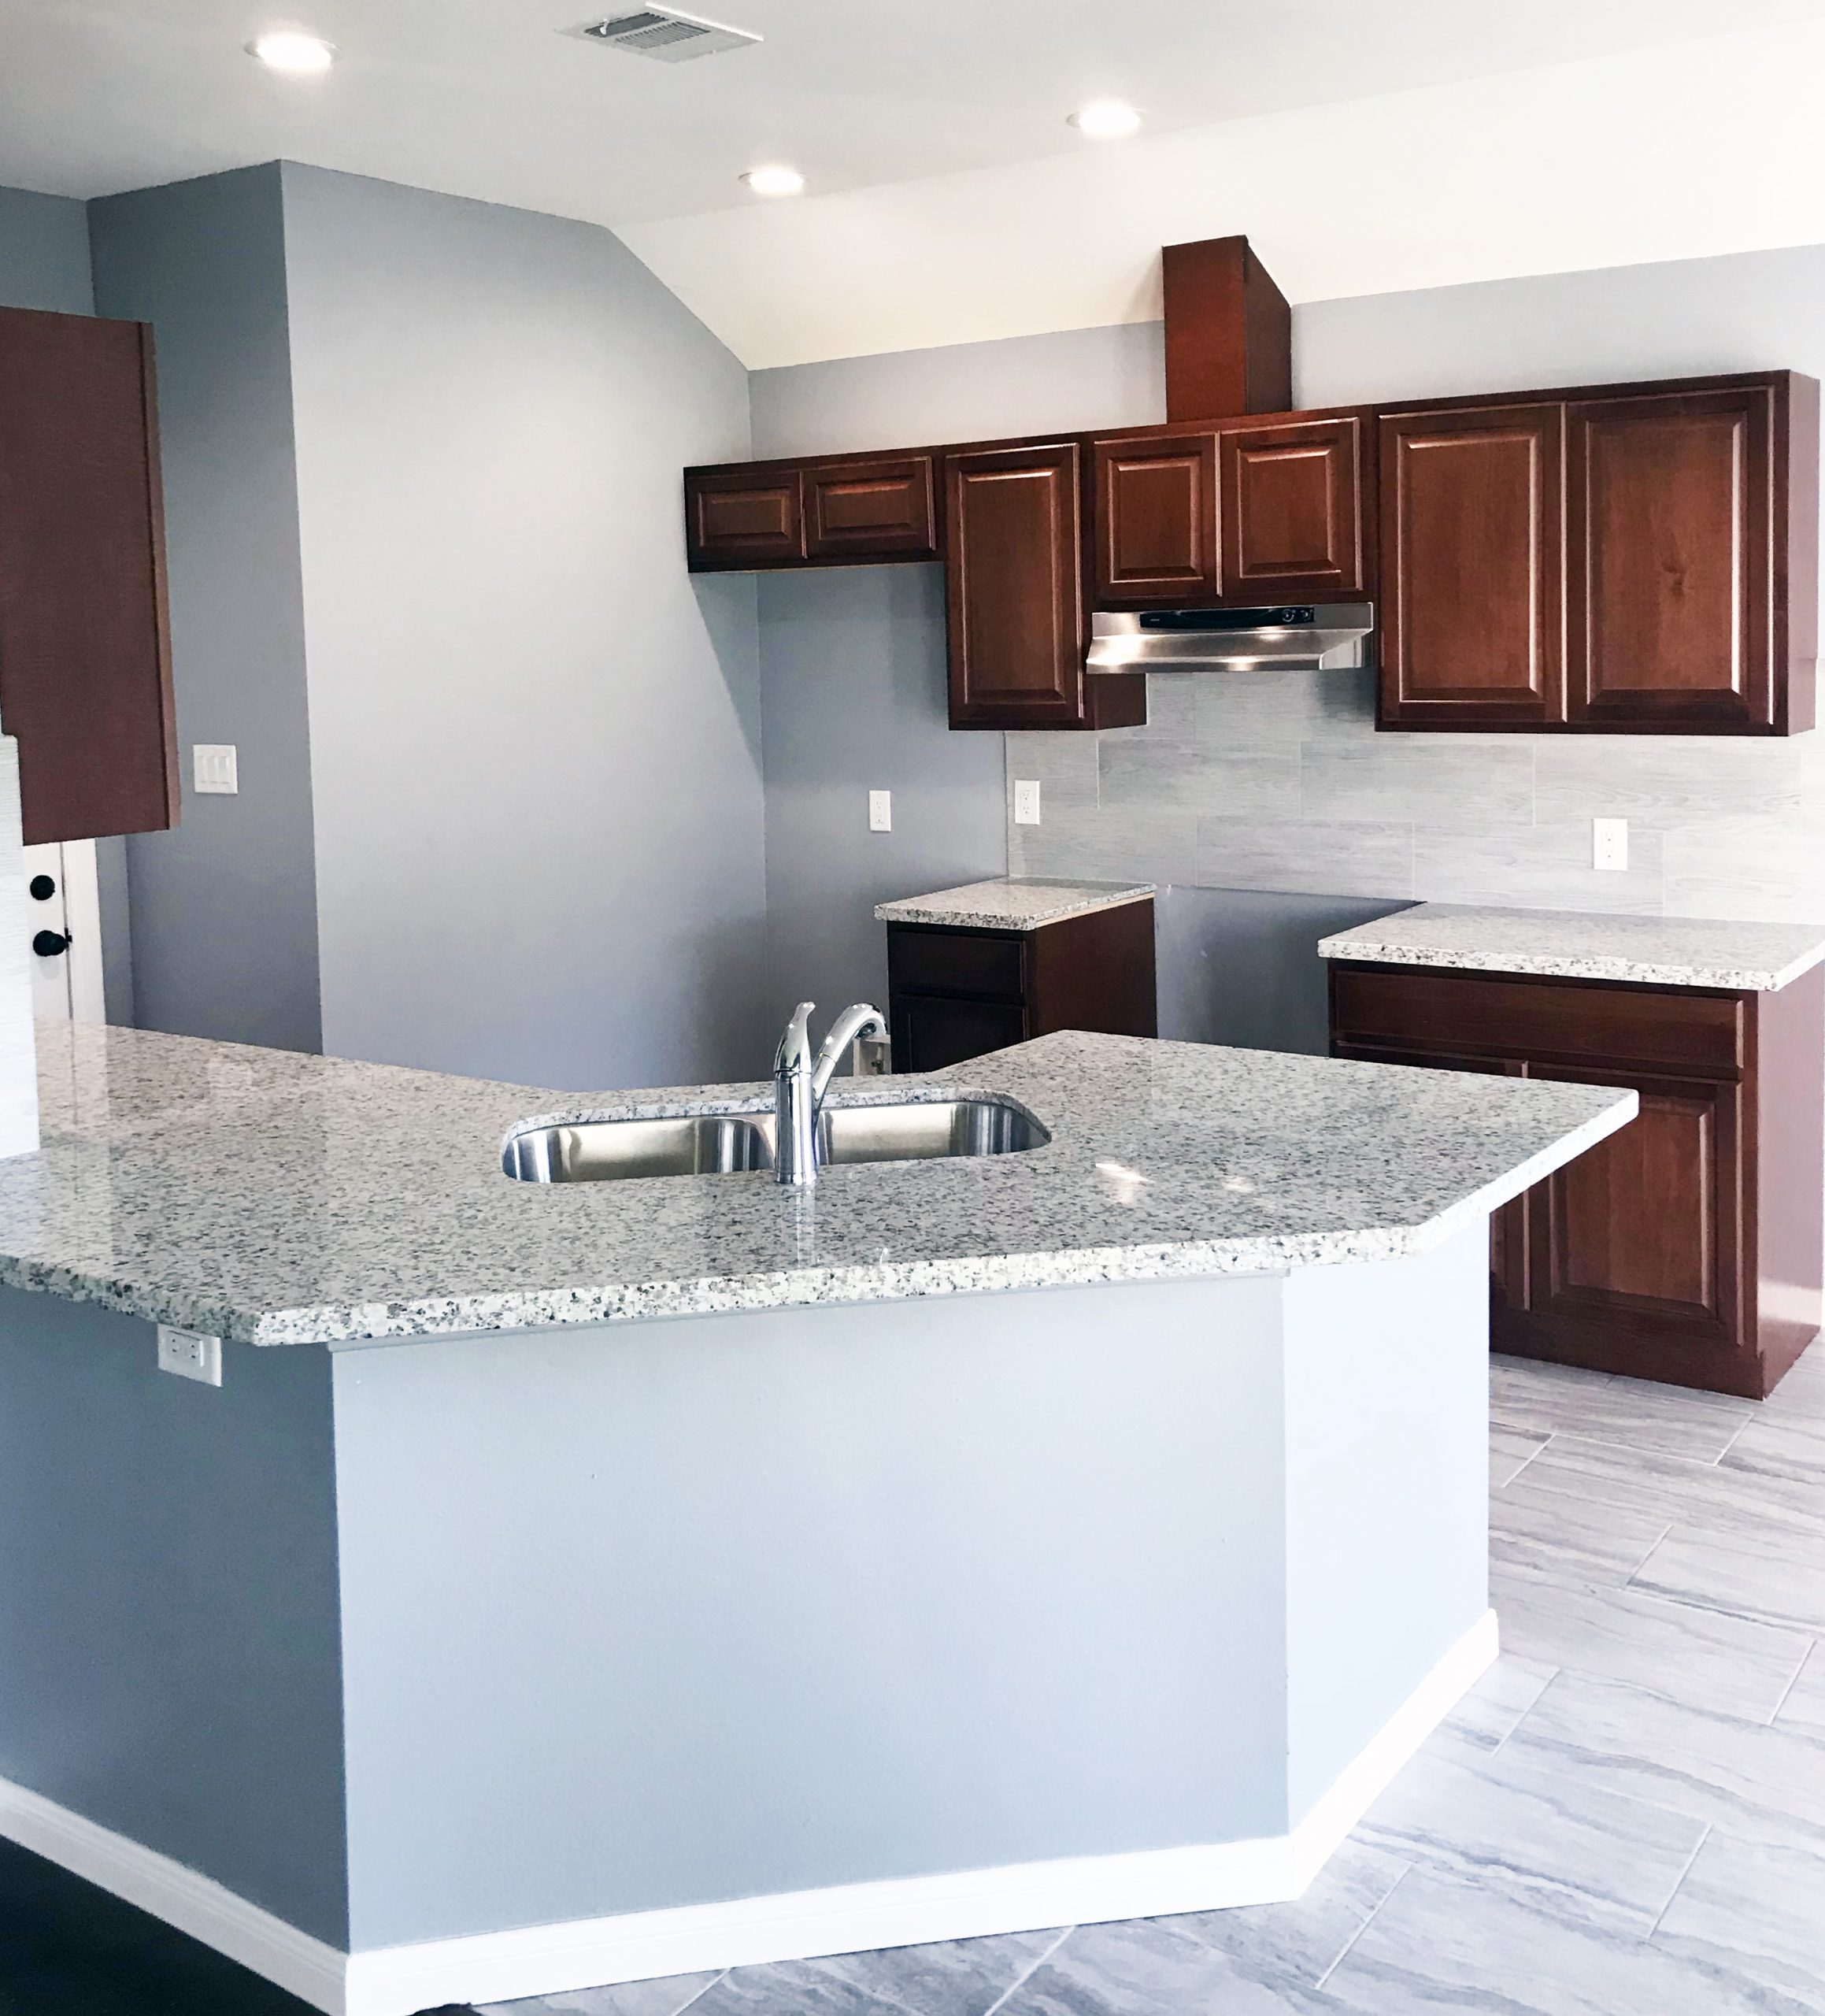 A kitchen with newly remodeled Countertops, Cabinets and Backsplash